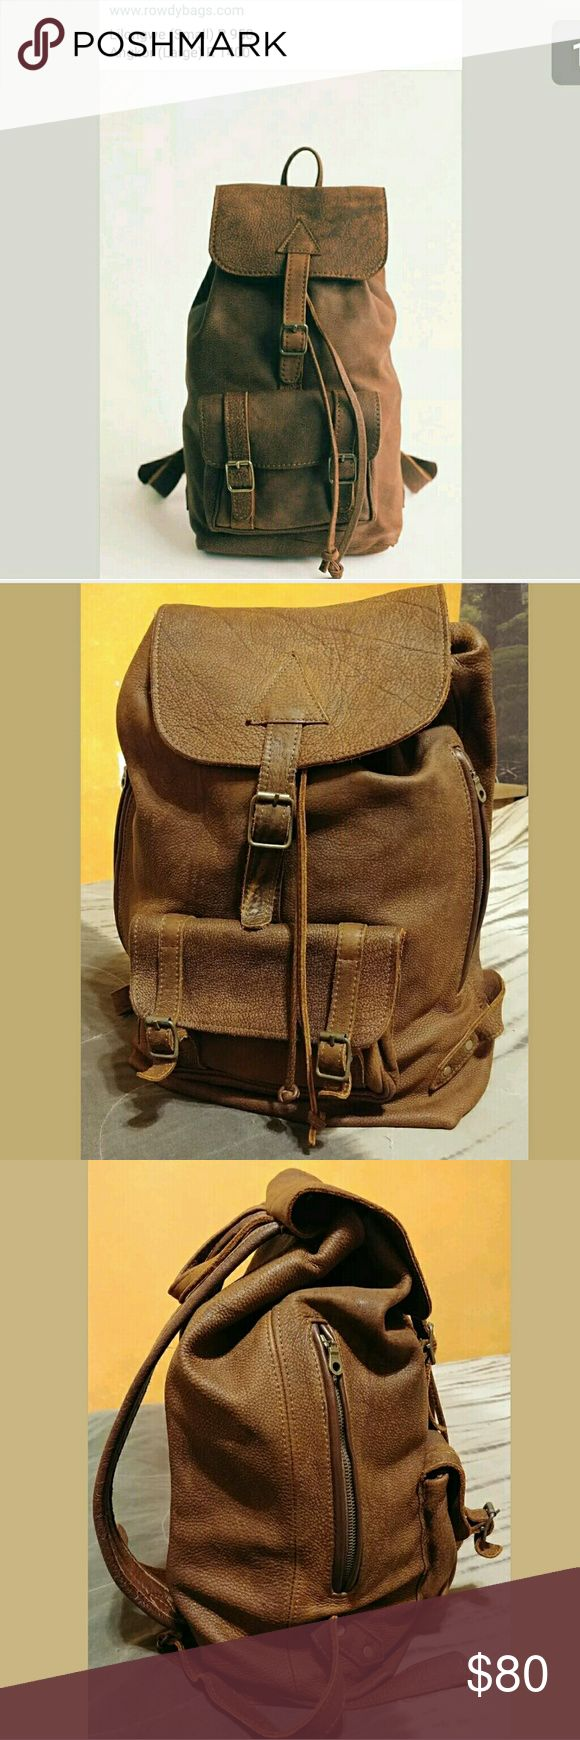 "Rowdy Leather Rucksack Handmade rugged leather Excellent condition Rowdy Bags Large leather Rucksack. The color is called Worn Brown. The bag is made of unlined heavy duty softened nubuck and features:  -Drawstring closure with flap & buckle  -Buckle closure front pocket  -Two zippered, leather-lined side pockets  -Interior slip pocket  -Rear cotton-lined laptop zip pocket (fits up to a 13"" laptop)  -Adjustable straps and top loop  -Lifetime Guarantee  -Measurements:  12.5"" length  20""…"